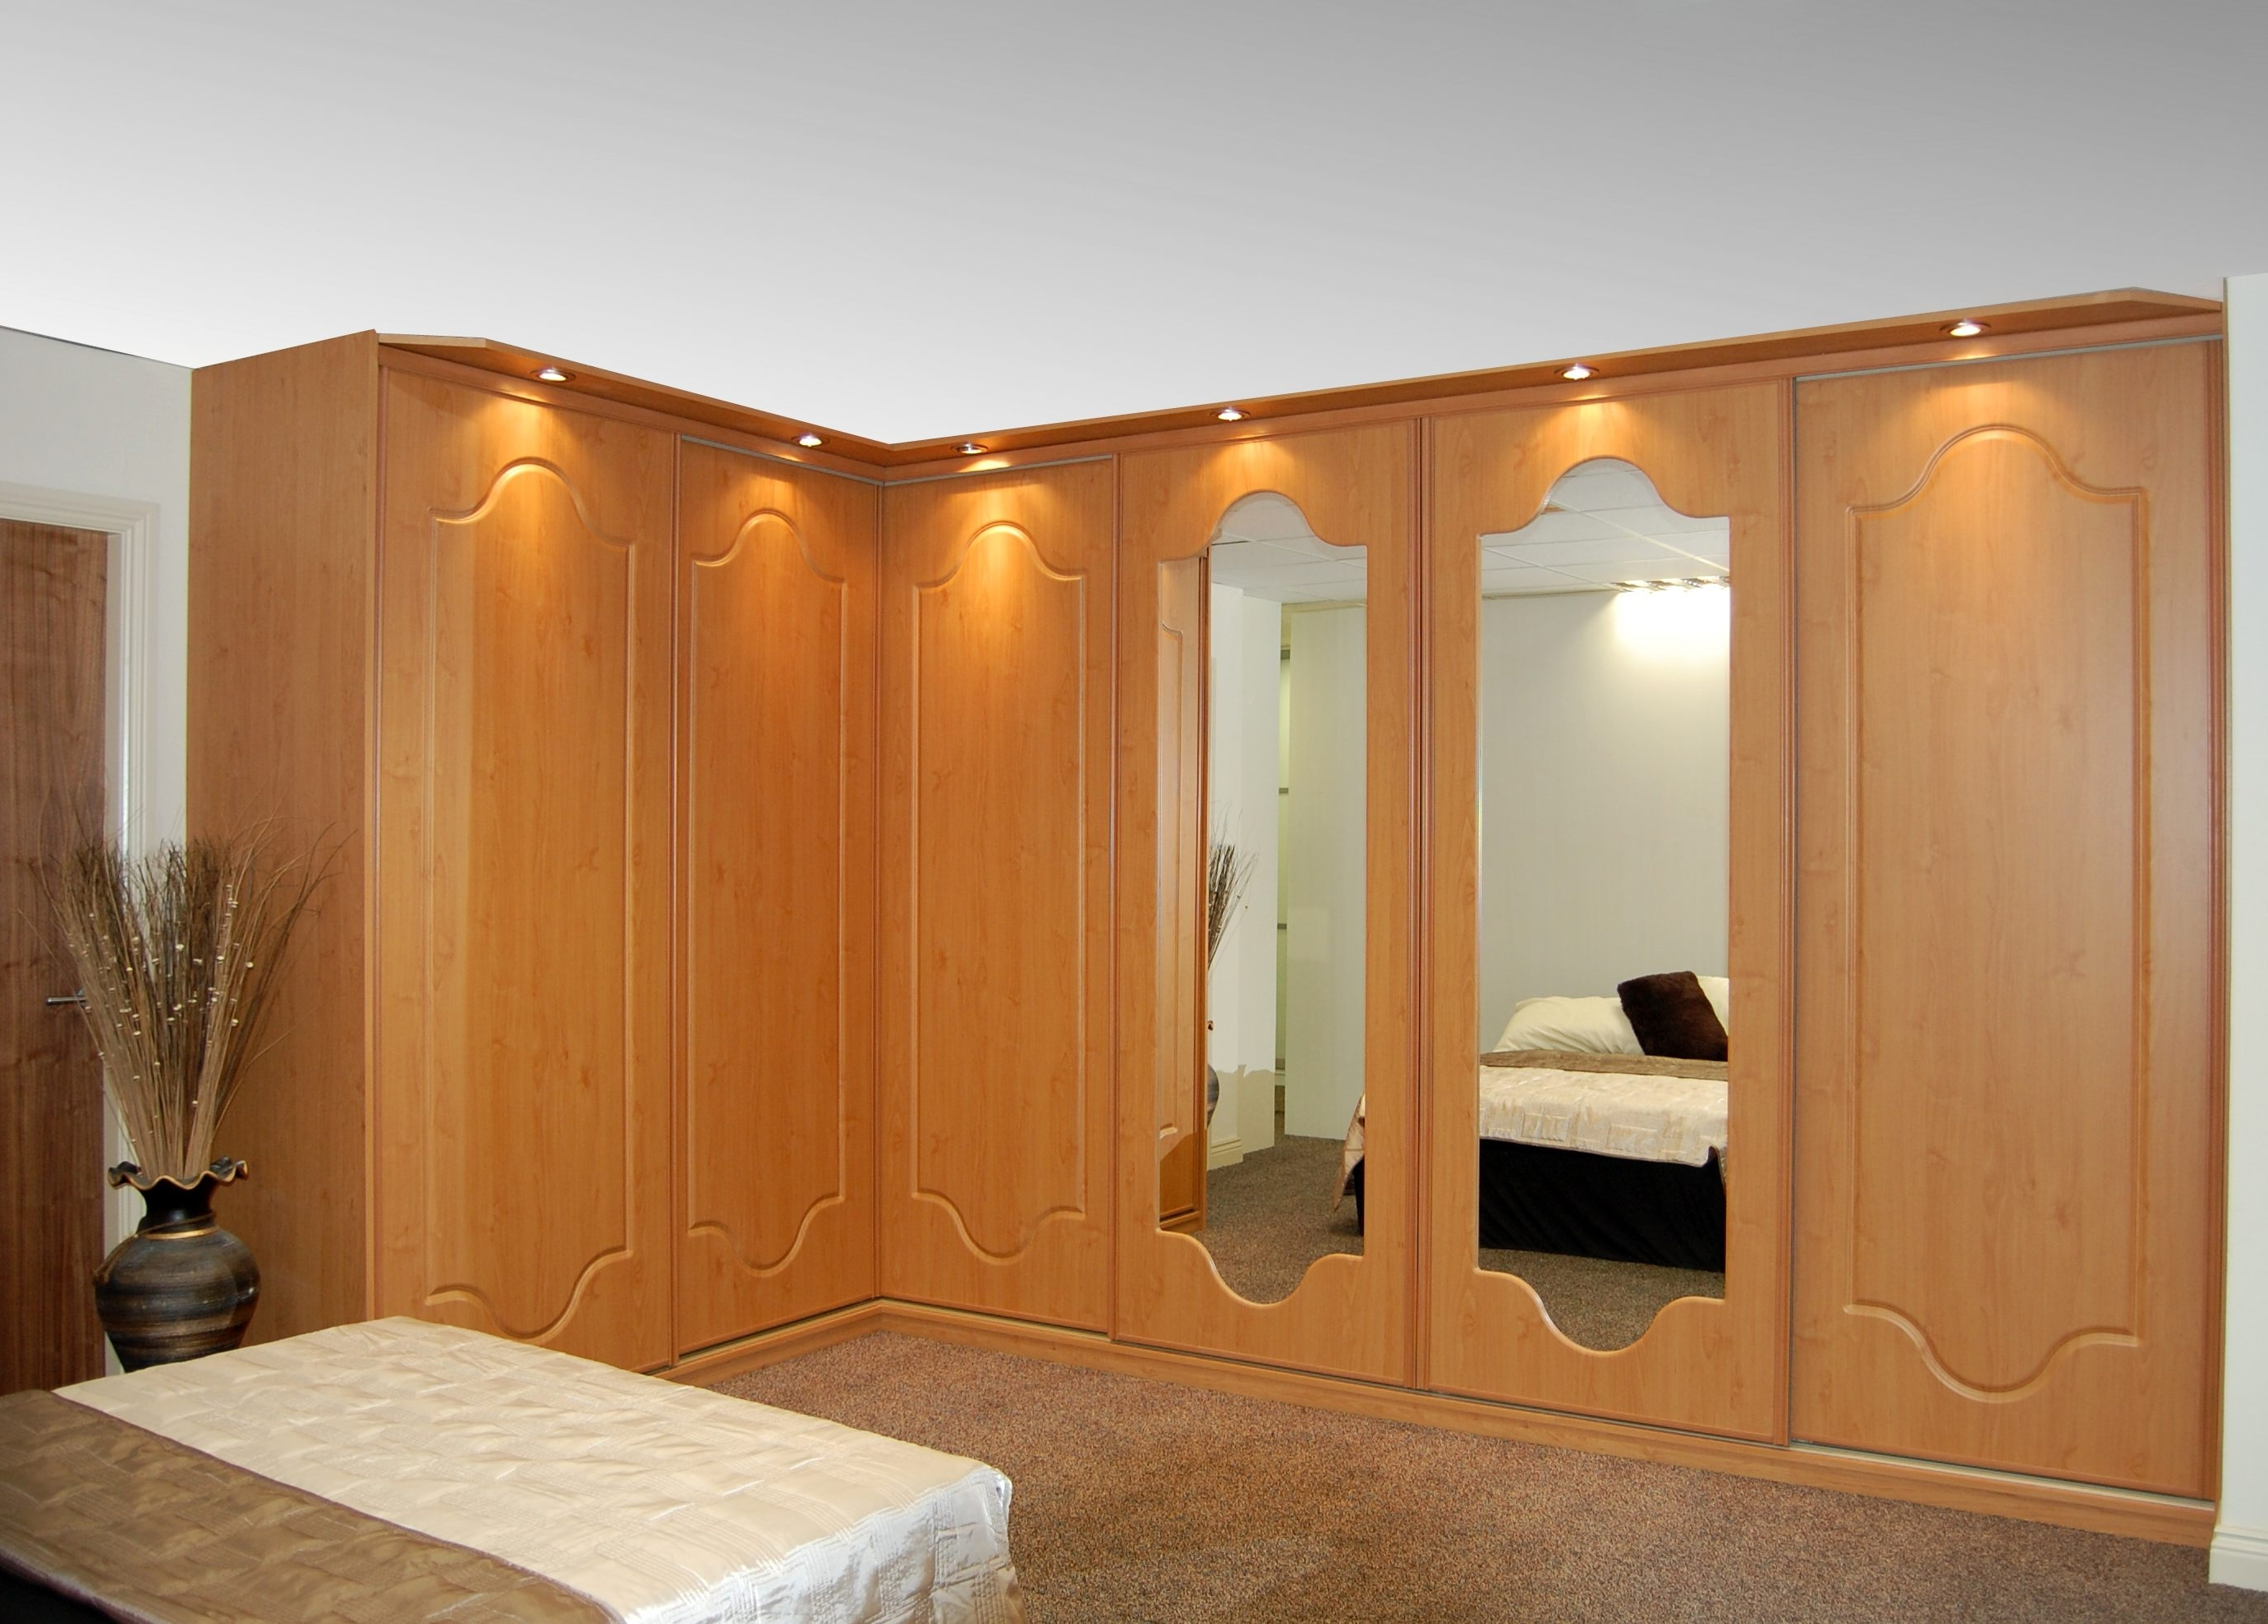 Slideglide – Sliding Wardrobes And Storage Within Curved Corner Wardrobes Doors (View 14 of 15)